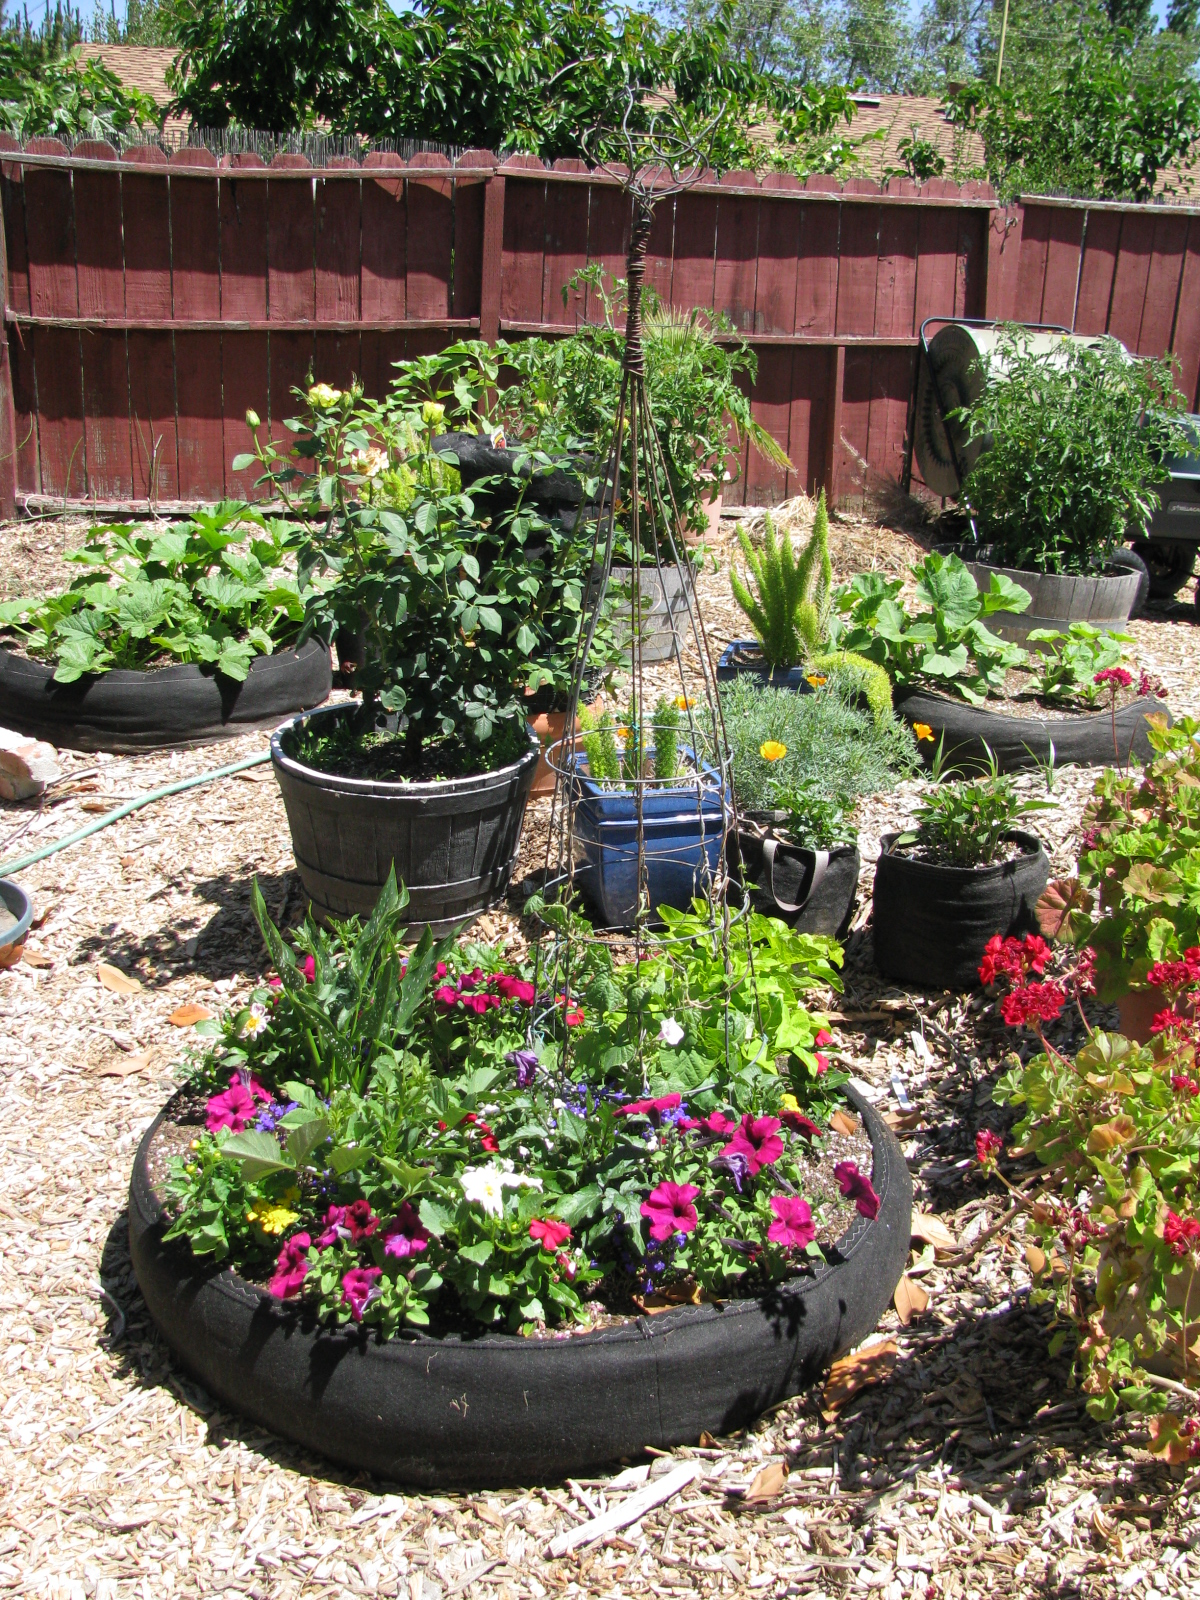 Landscape Redo Garden With Raised Beds And Fabric Pots